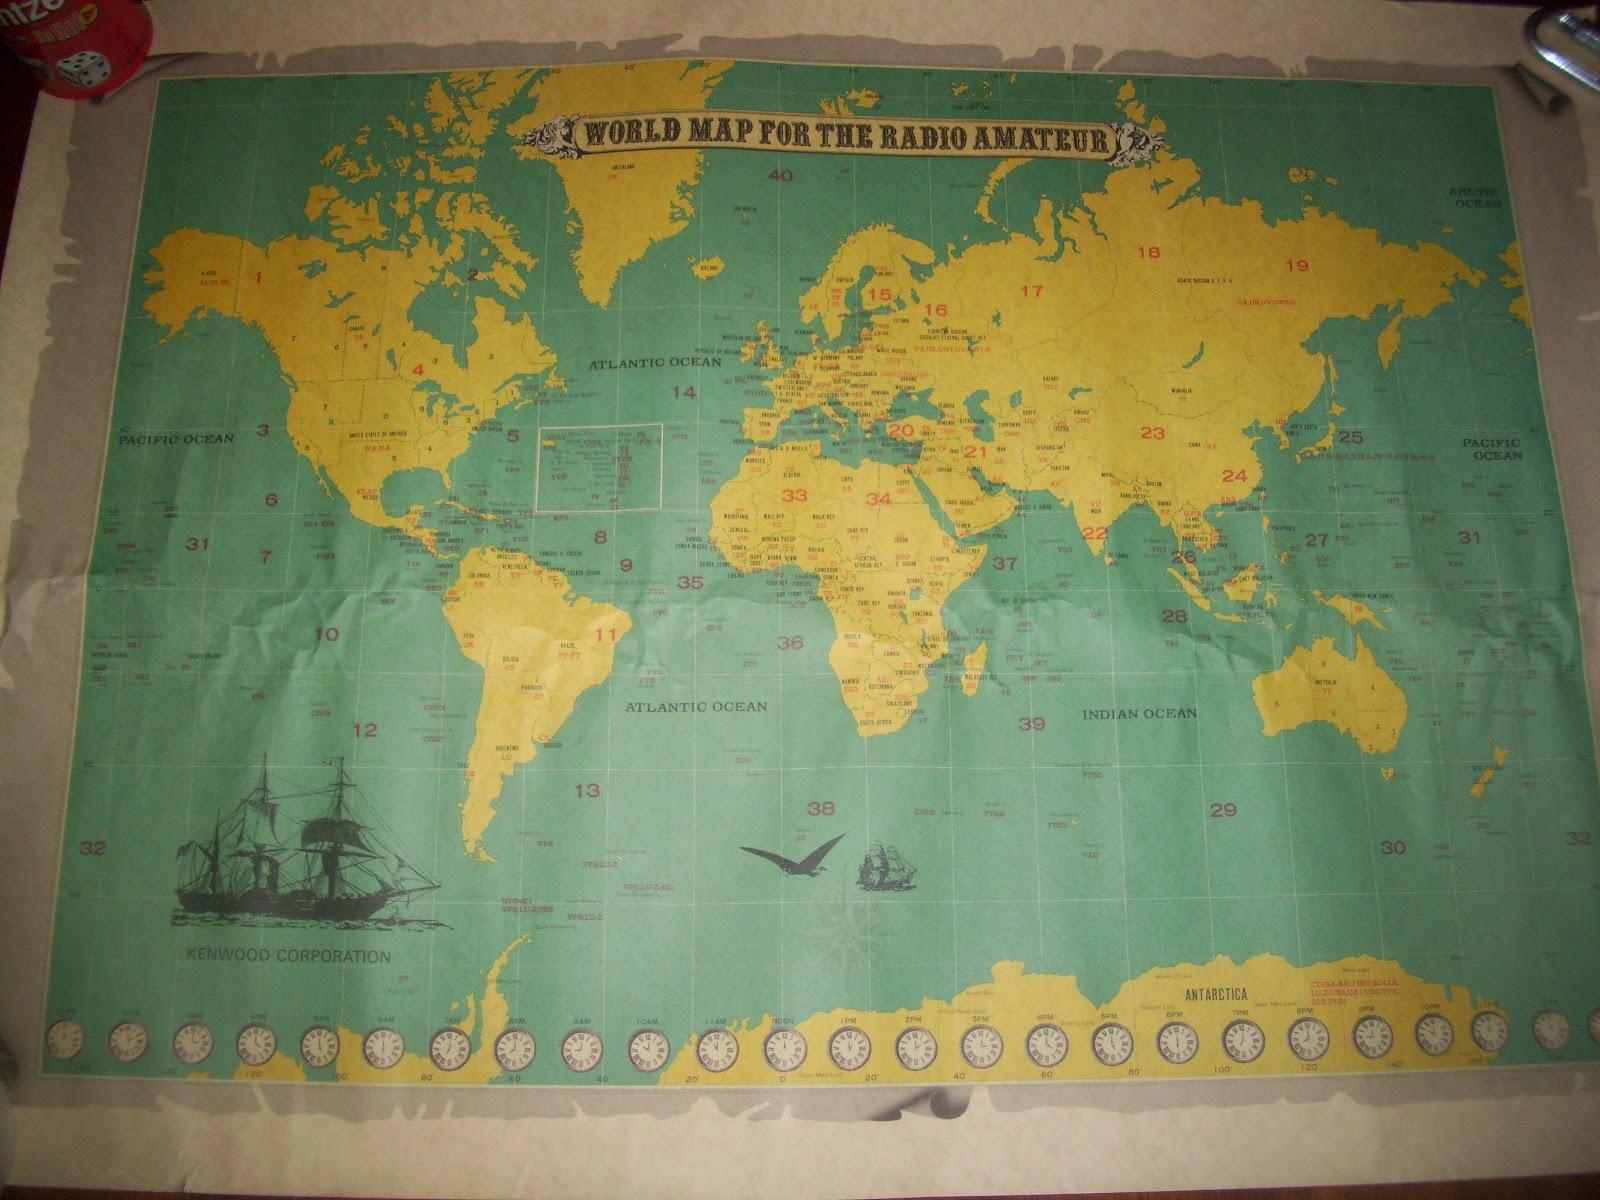 My favorite things world map for the radio amateur the map itself was in great condition never been folded a neat piece that appealed to radio map and history enthusiasts gumiabroncs Gallery